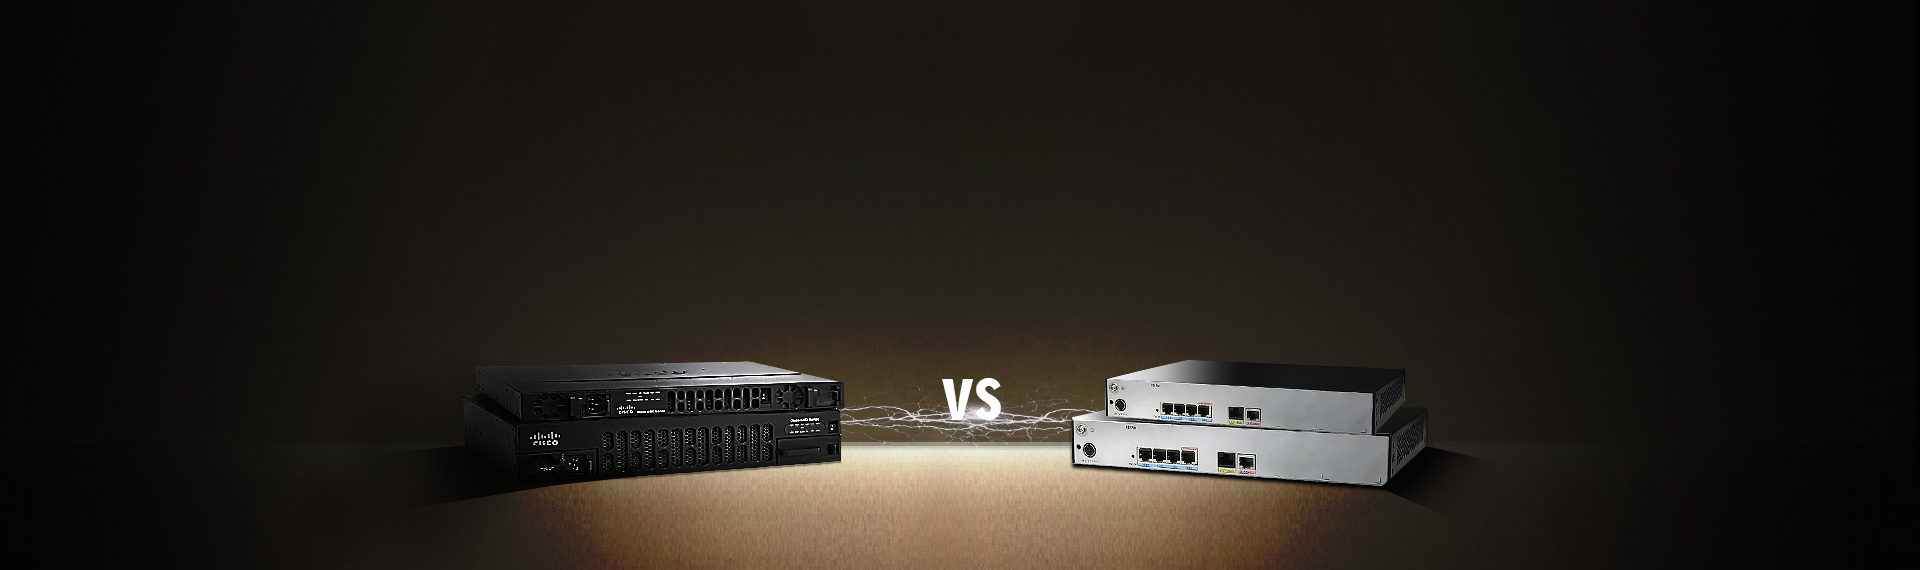 Comparison between Cisco ISR and Huawei AR Router